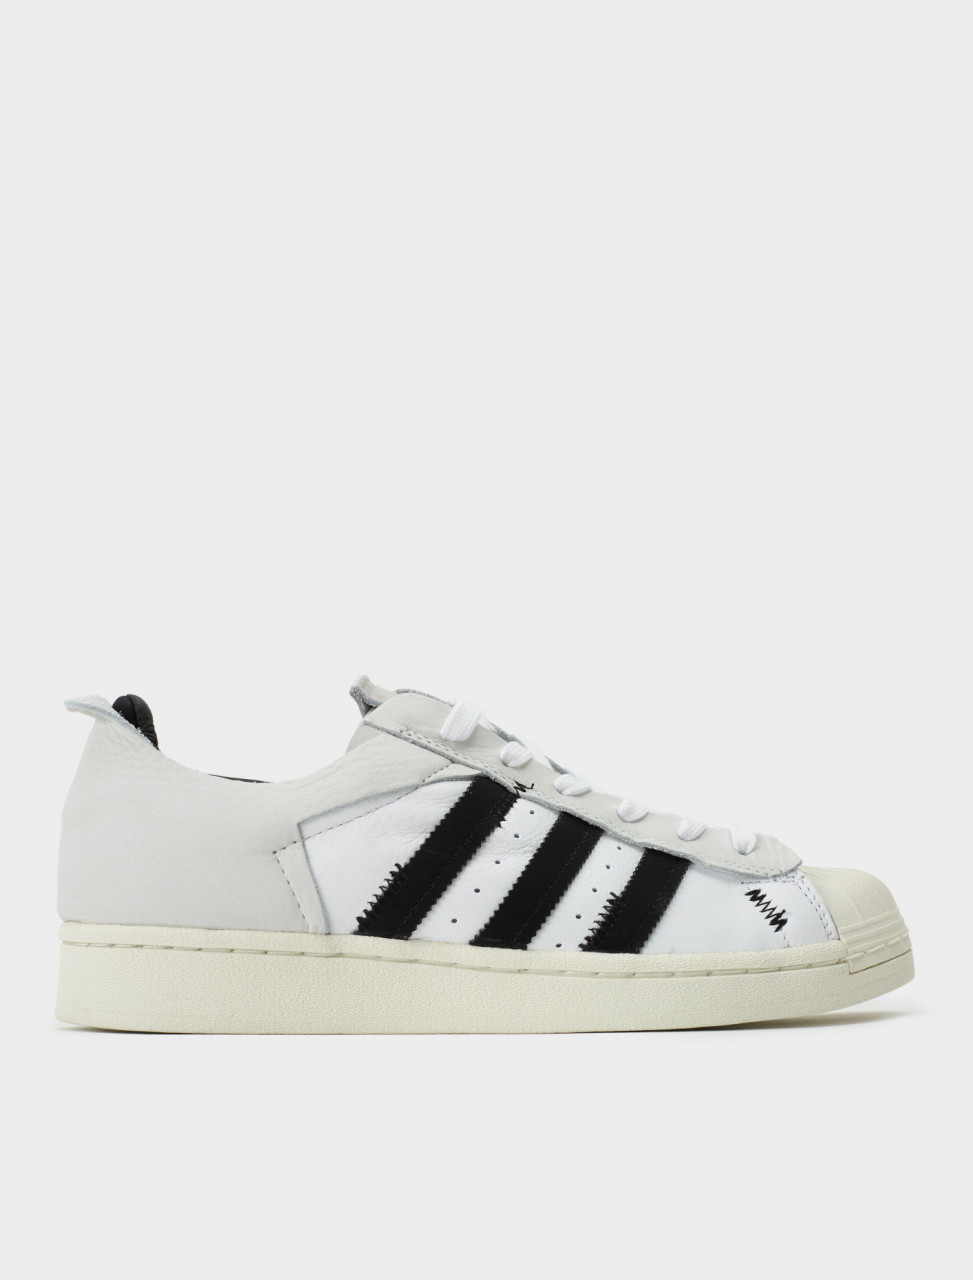 Adidas Superstar WS2 Sneaker in Black and White Side